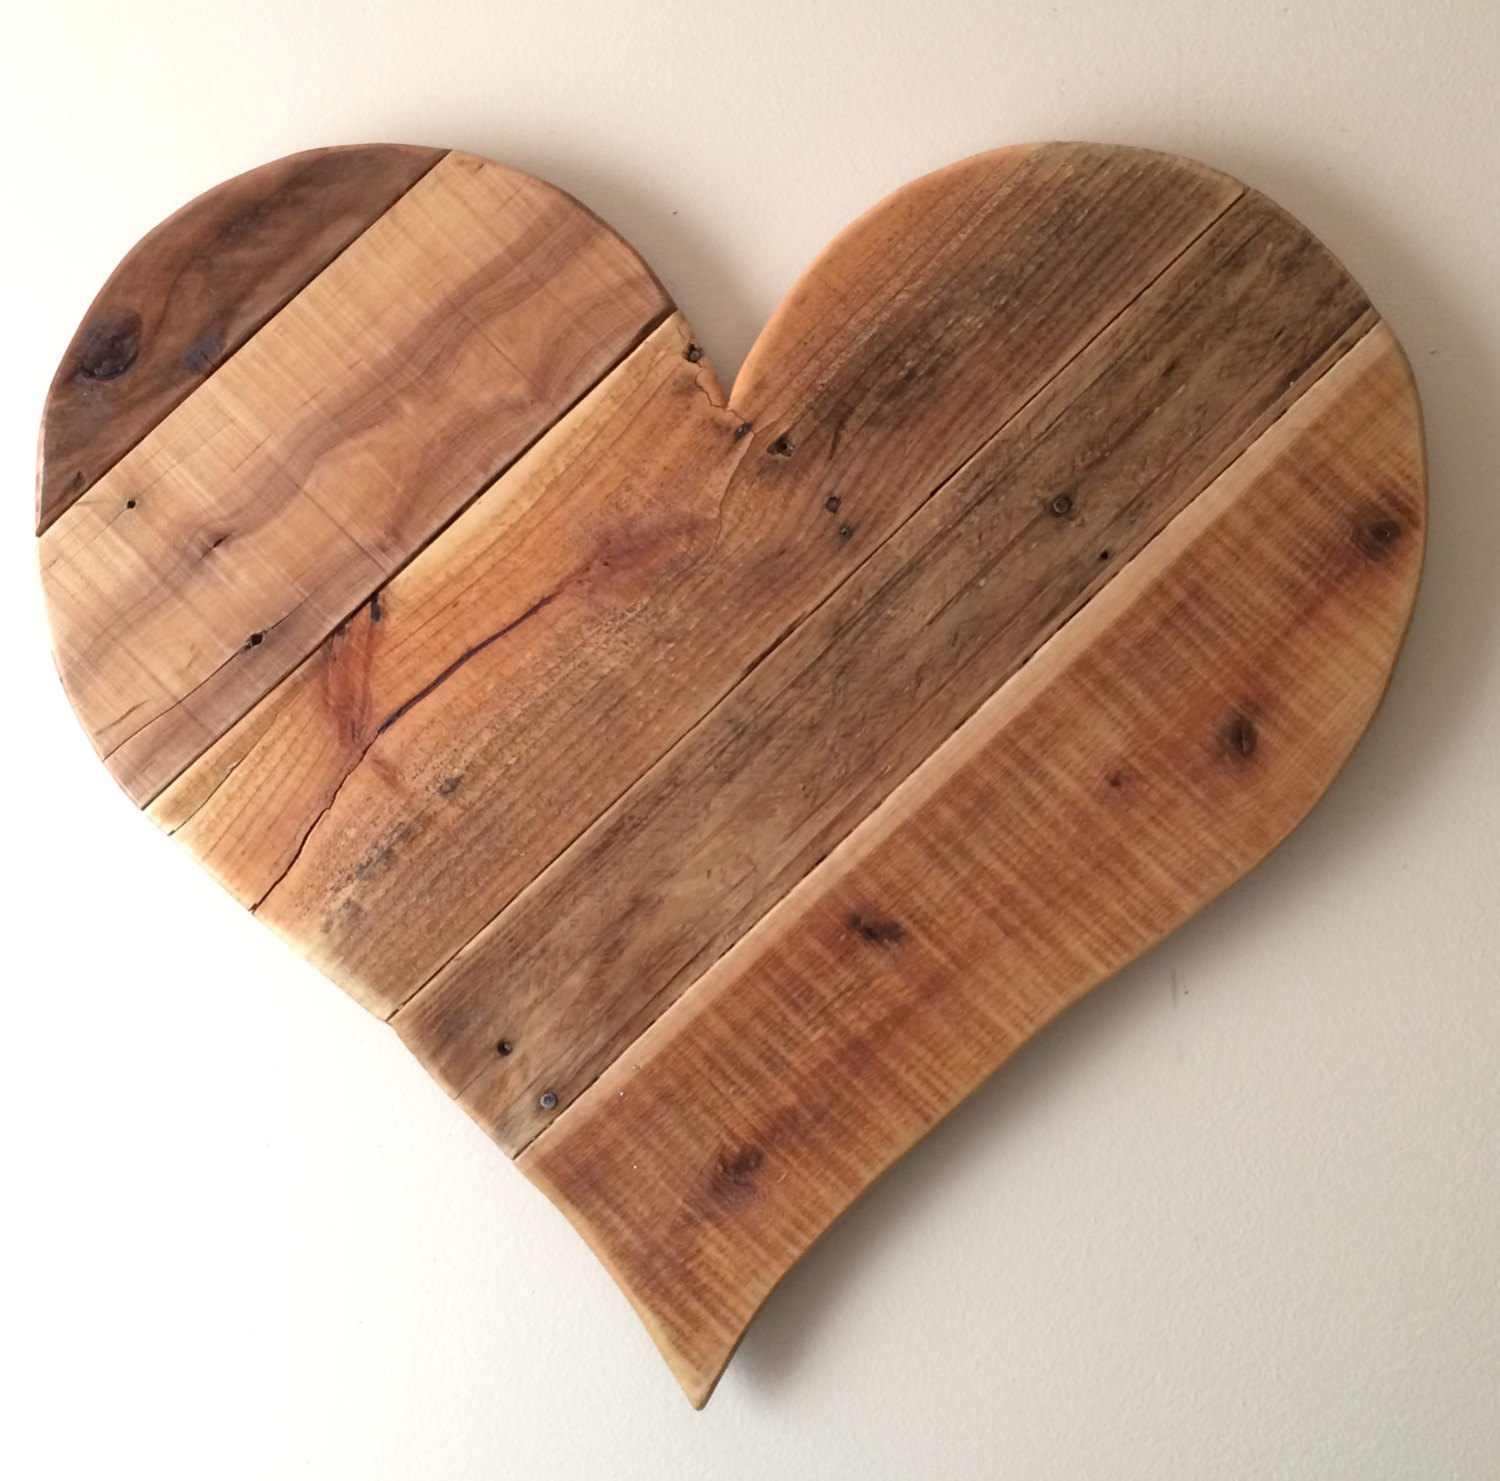 Wood carving heart clipart image freeuse stock Free Wood Heart Cliparts, Download Free Clip Art, Free Clip ... image freeuse stock